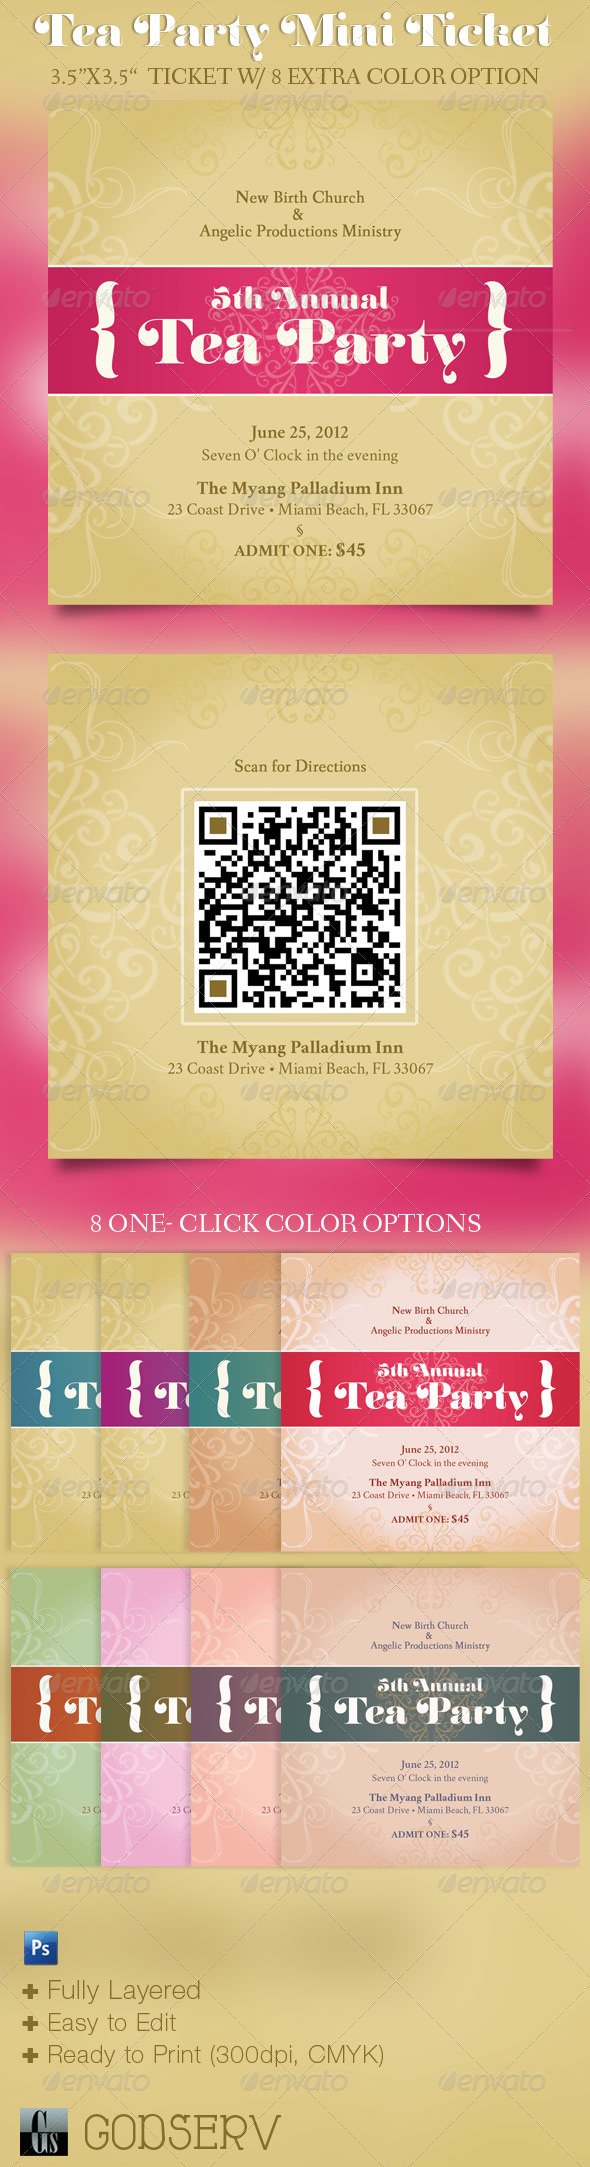 Banquet Ticket Template create receipt template free ticket maker – Banquet Ticket Template